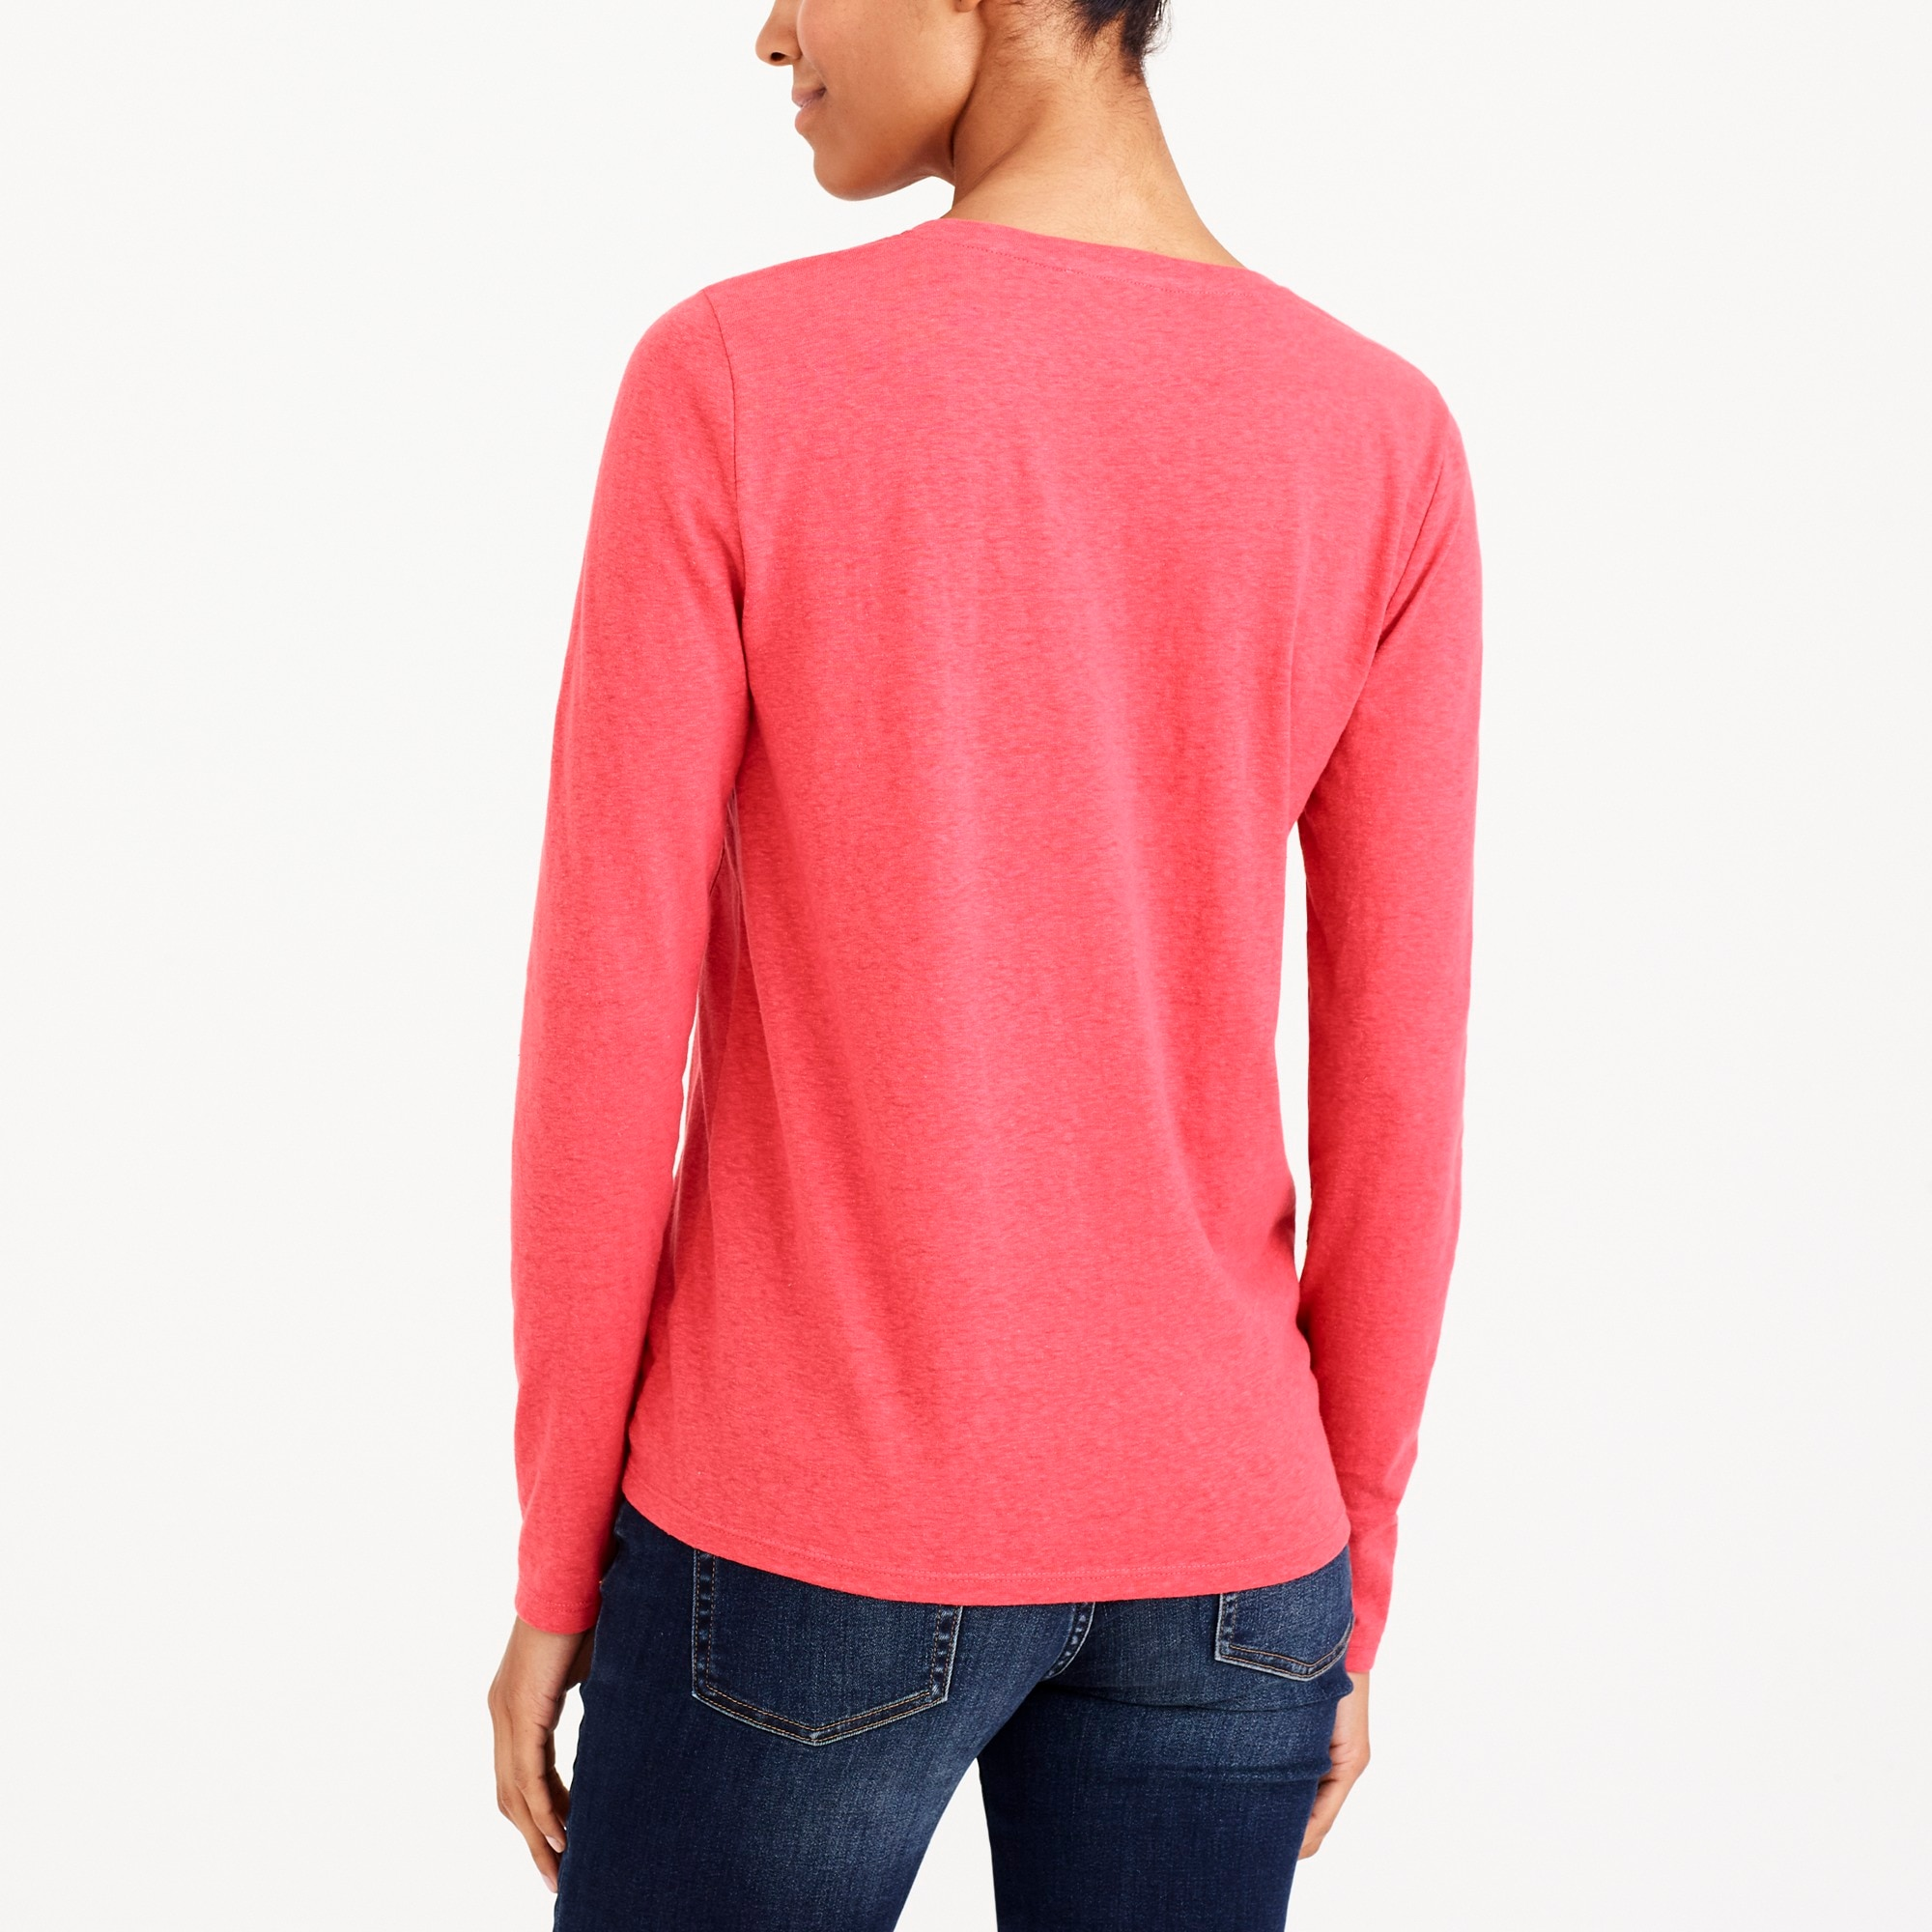 Long-sleeve side-tie T-shirt